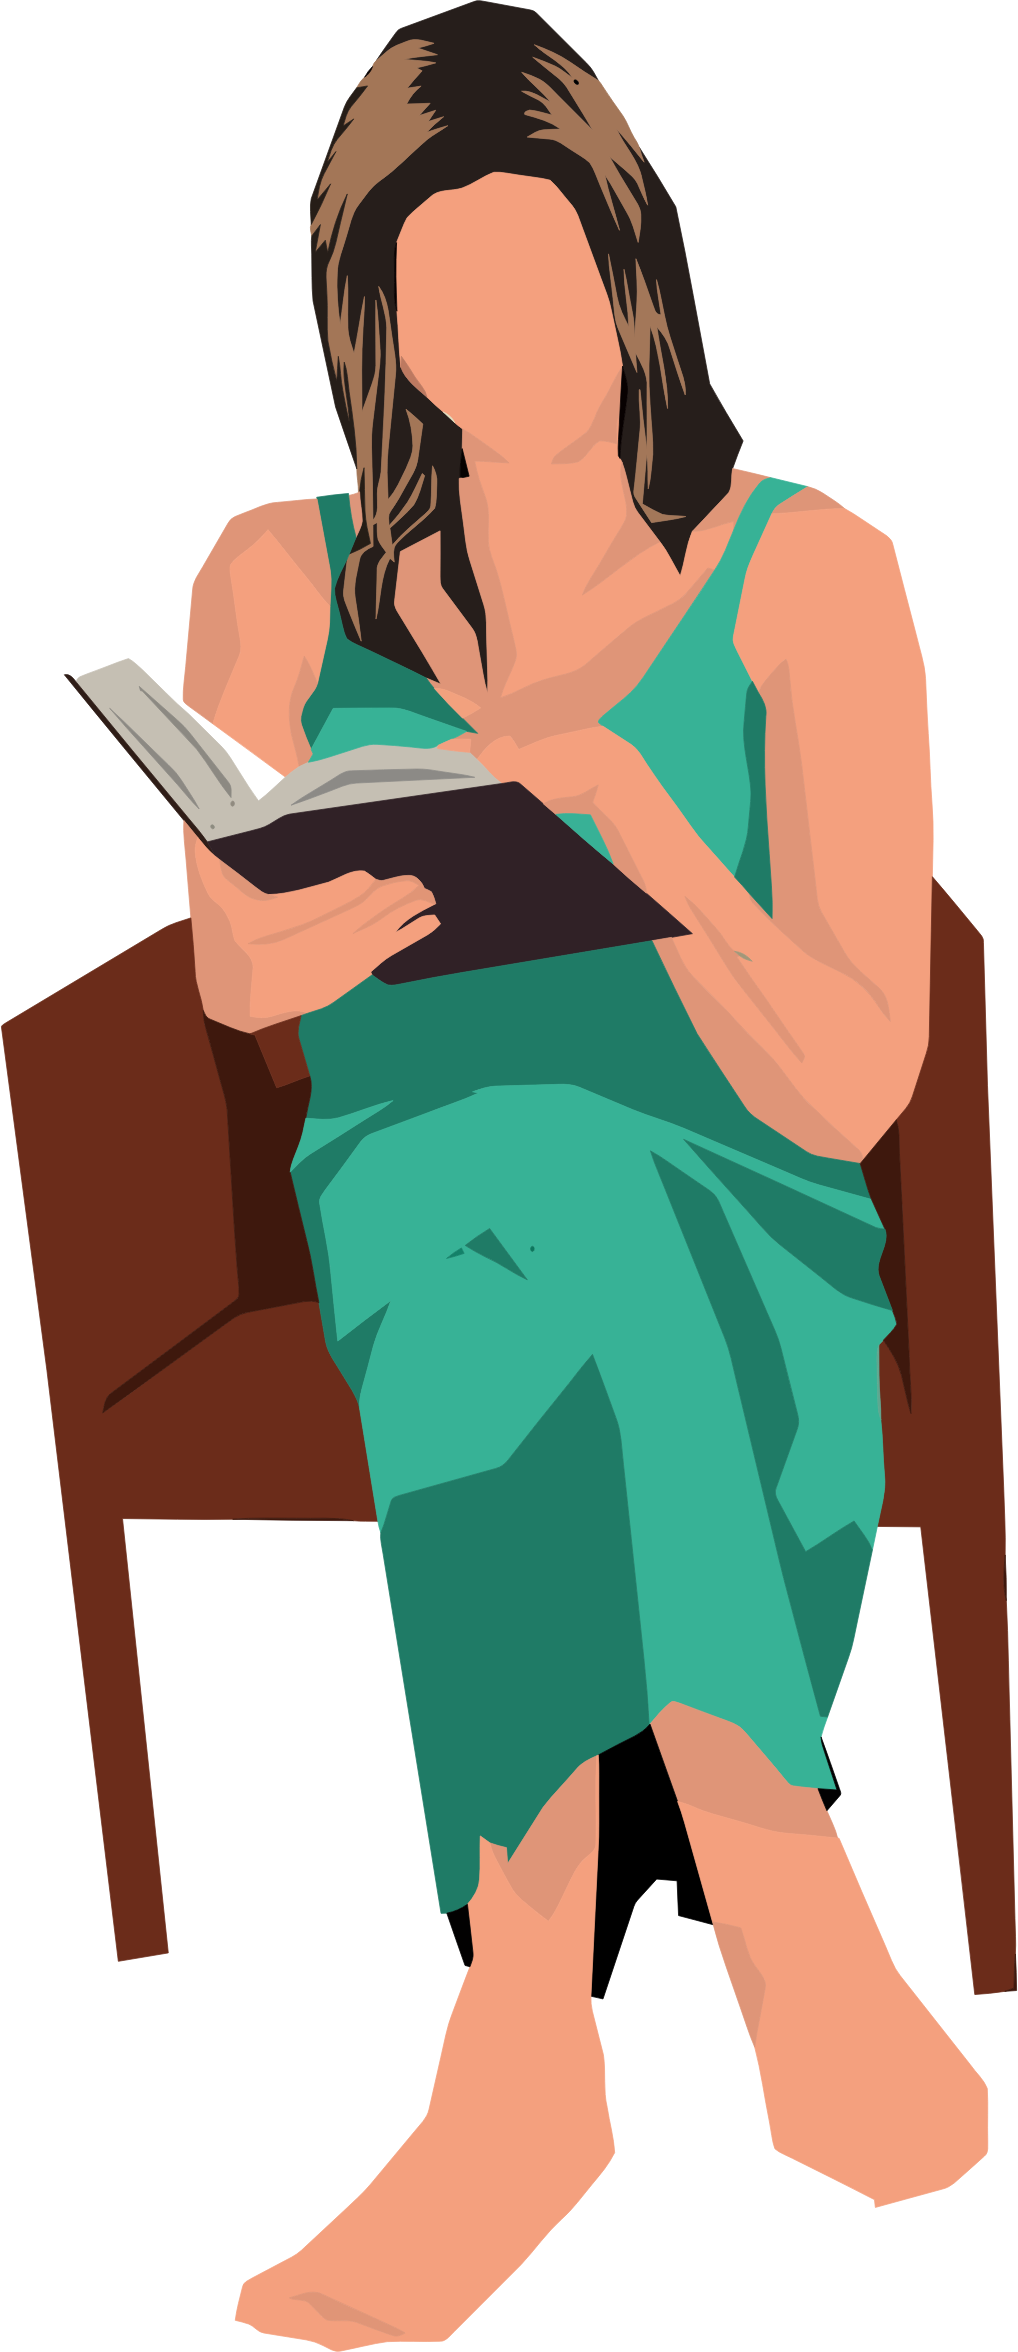 Woman Sitting In Chair Reading by GDJ